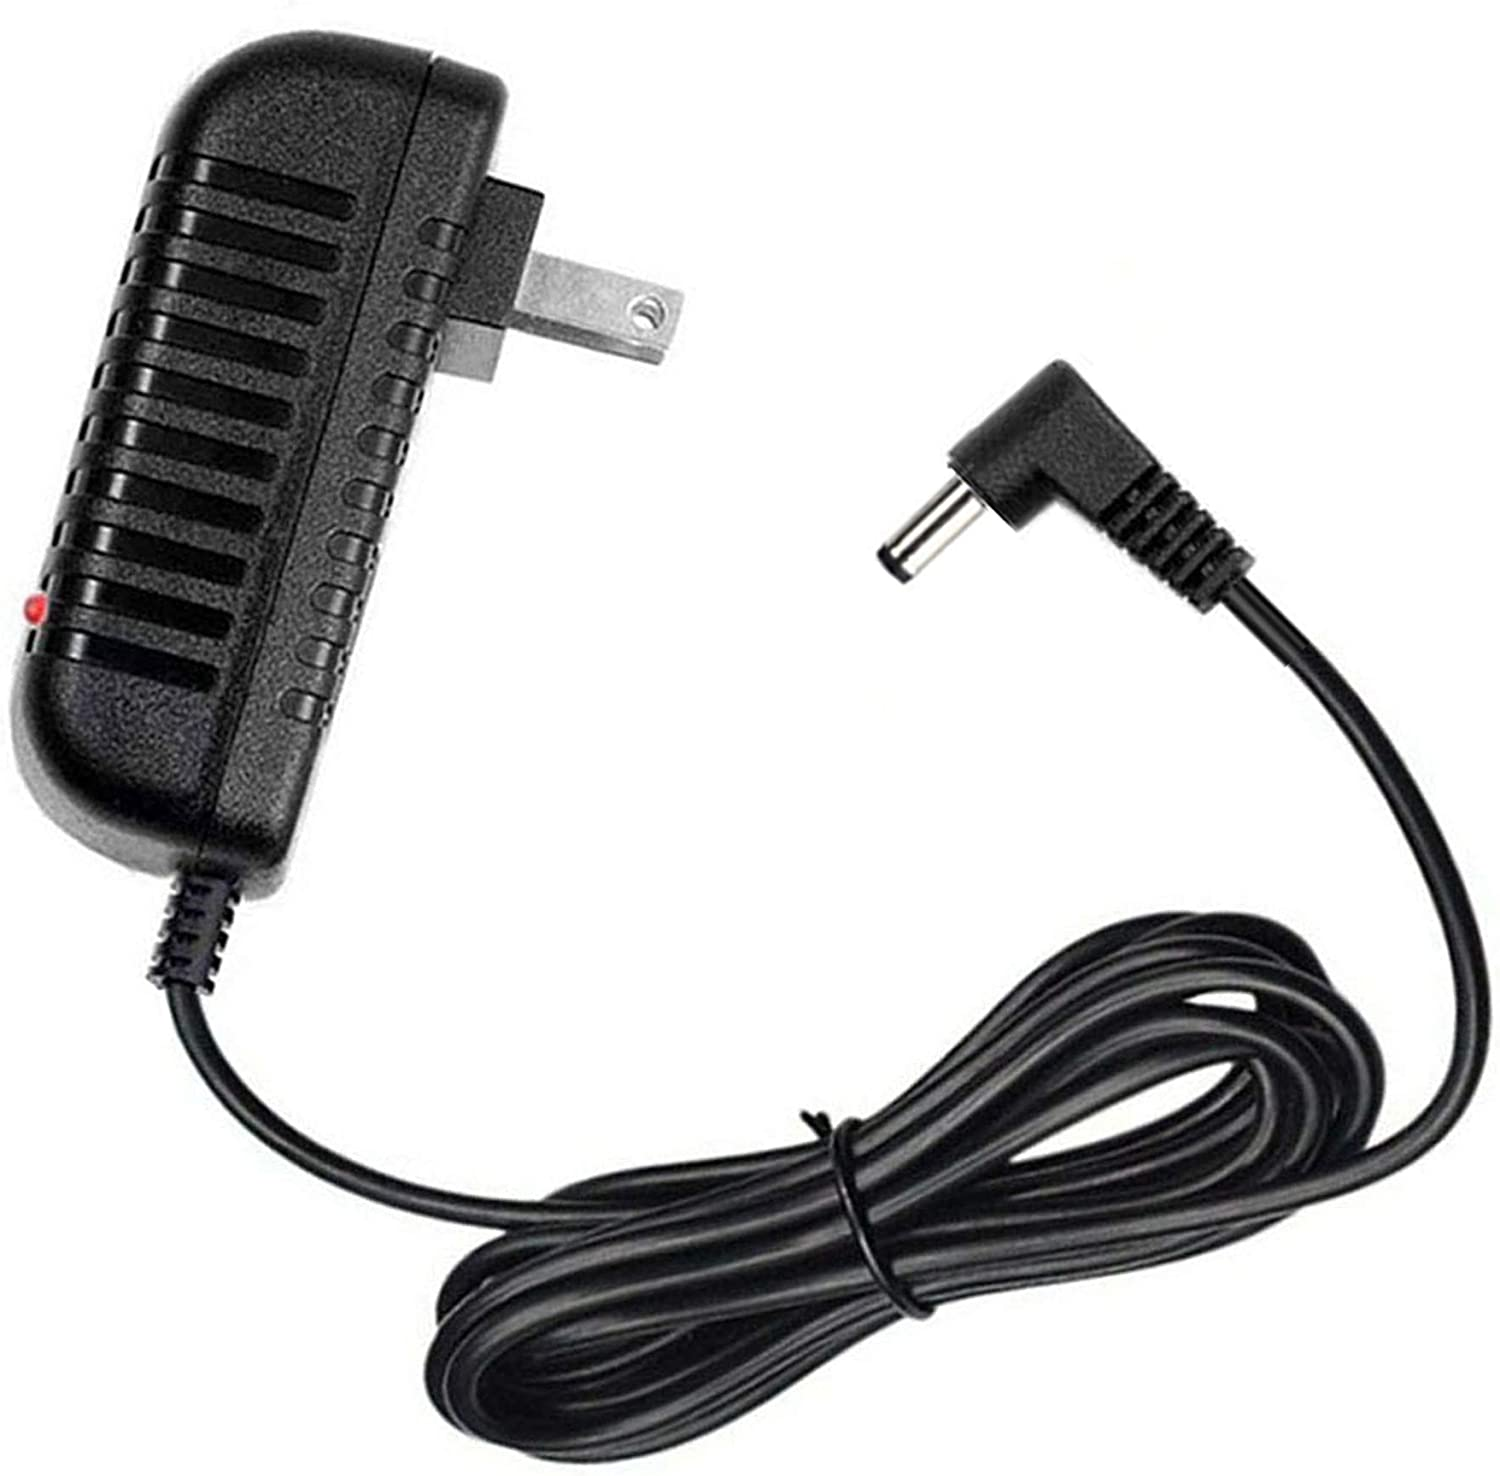 9V Charger AC Adapter for RadioShack PRO-404 Radio Scanner Home Wall DC Charger Power Supply Cord Cable, 5 Feet, with LED Indicator